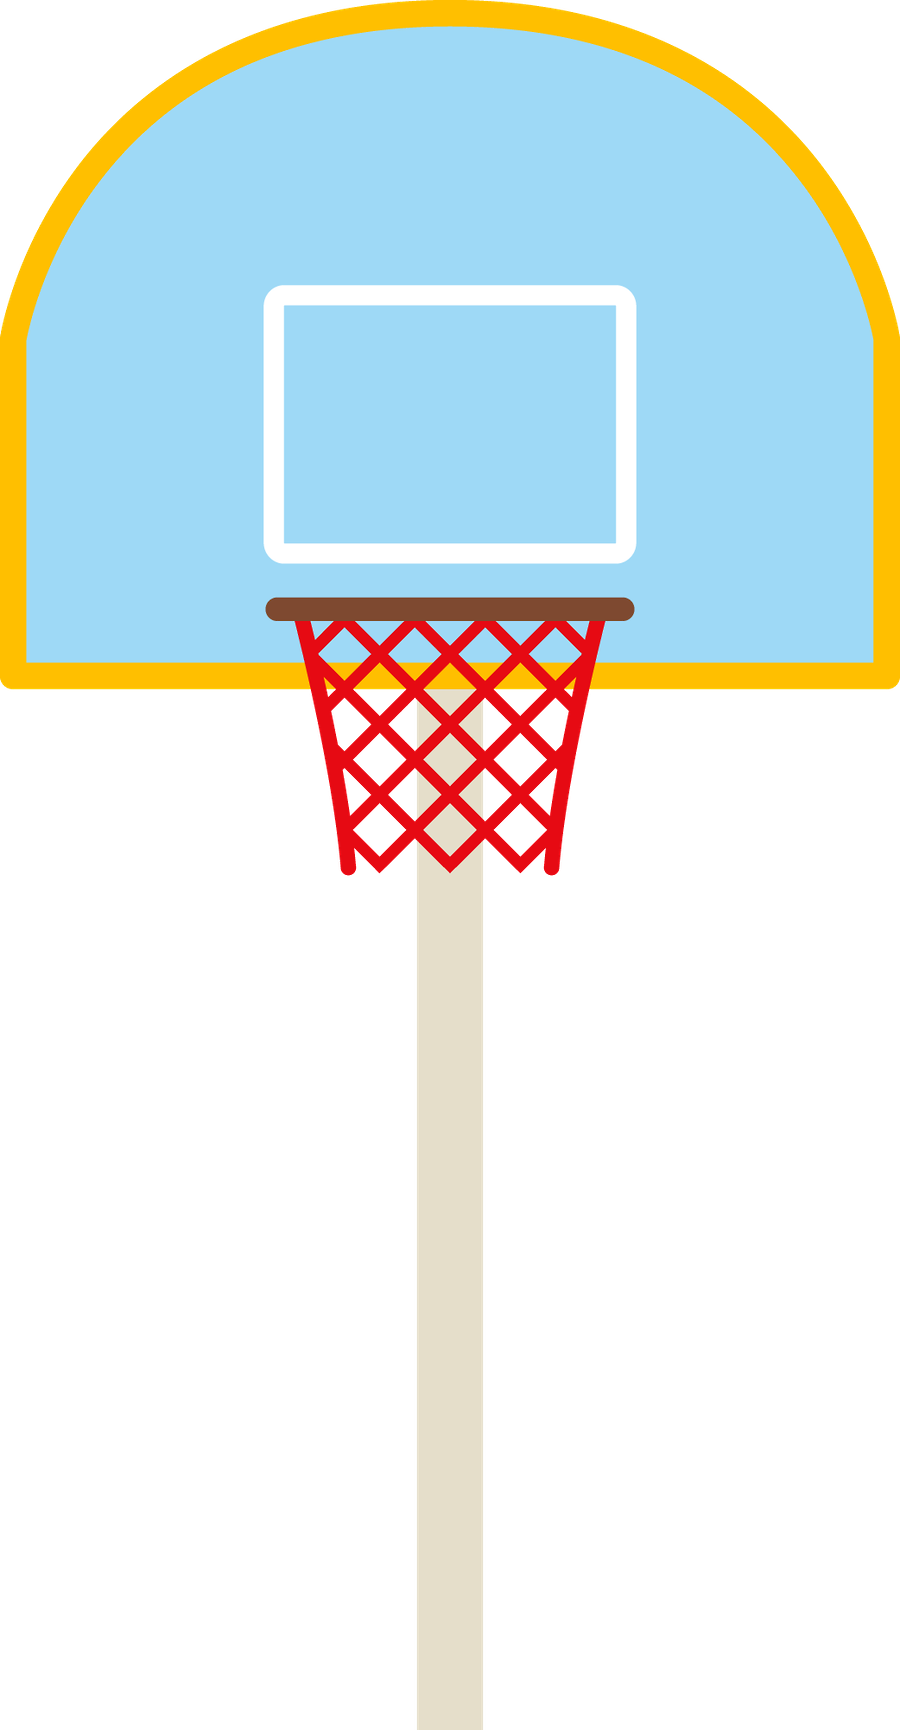 Super basketball clipart picture royalty free library Basquete - Minus | Clip Art - Sports | Pinterest | Clip art, Chart ... picture royalty free library